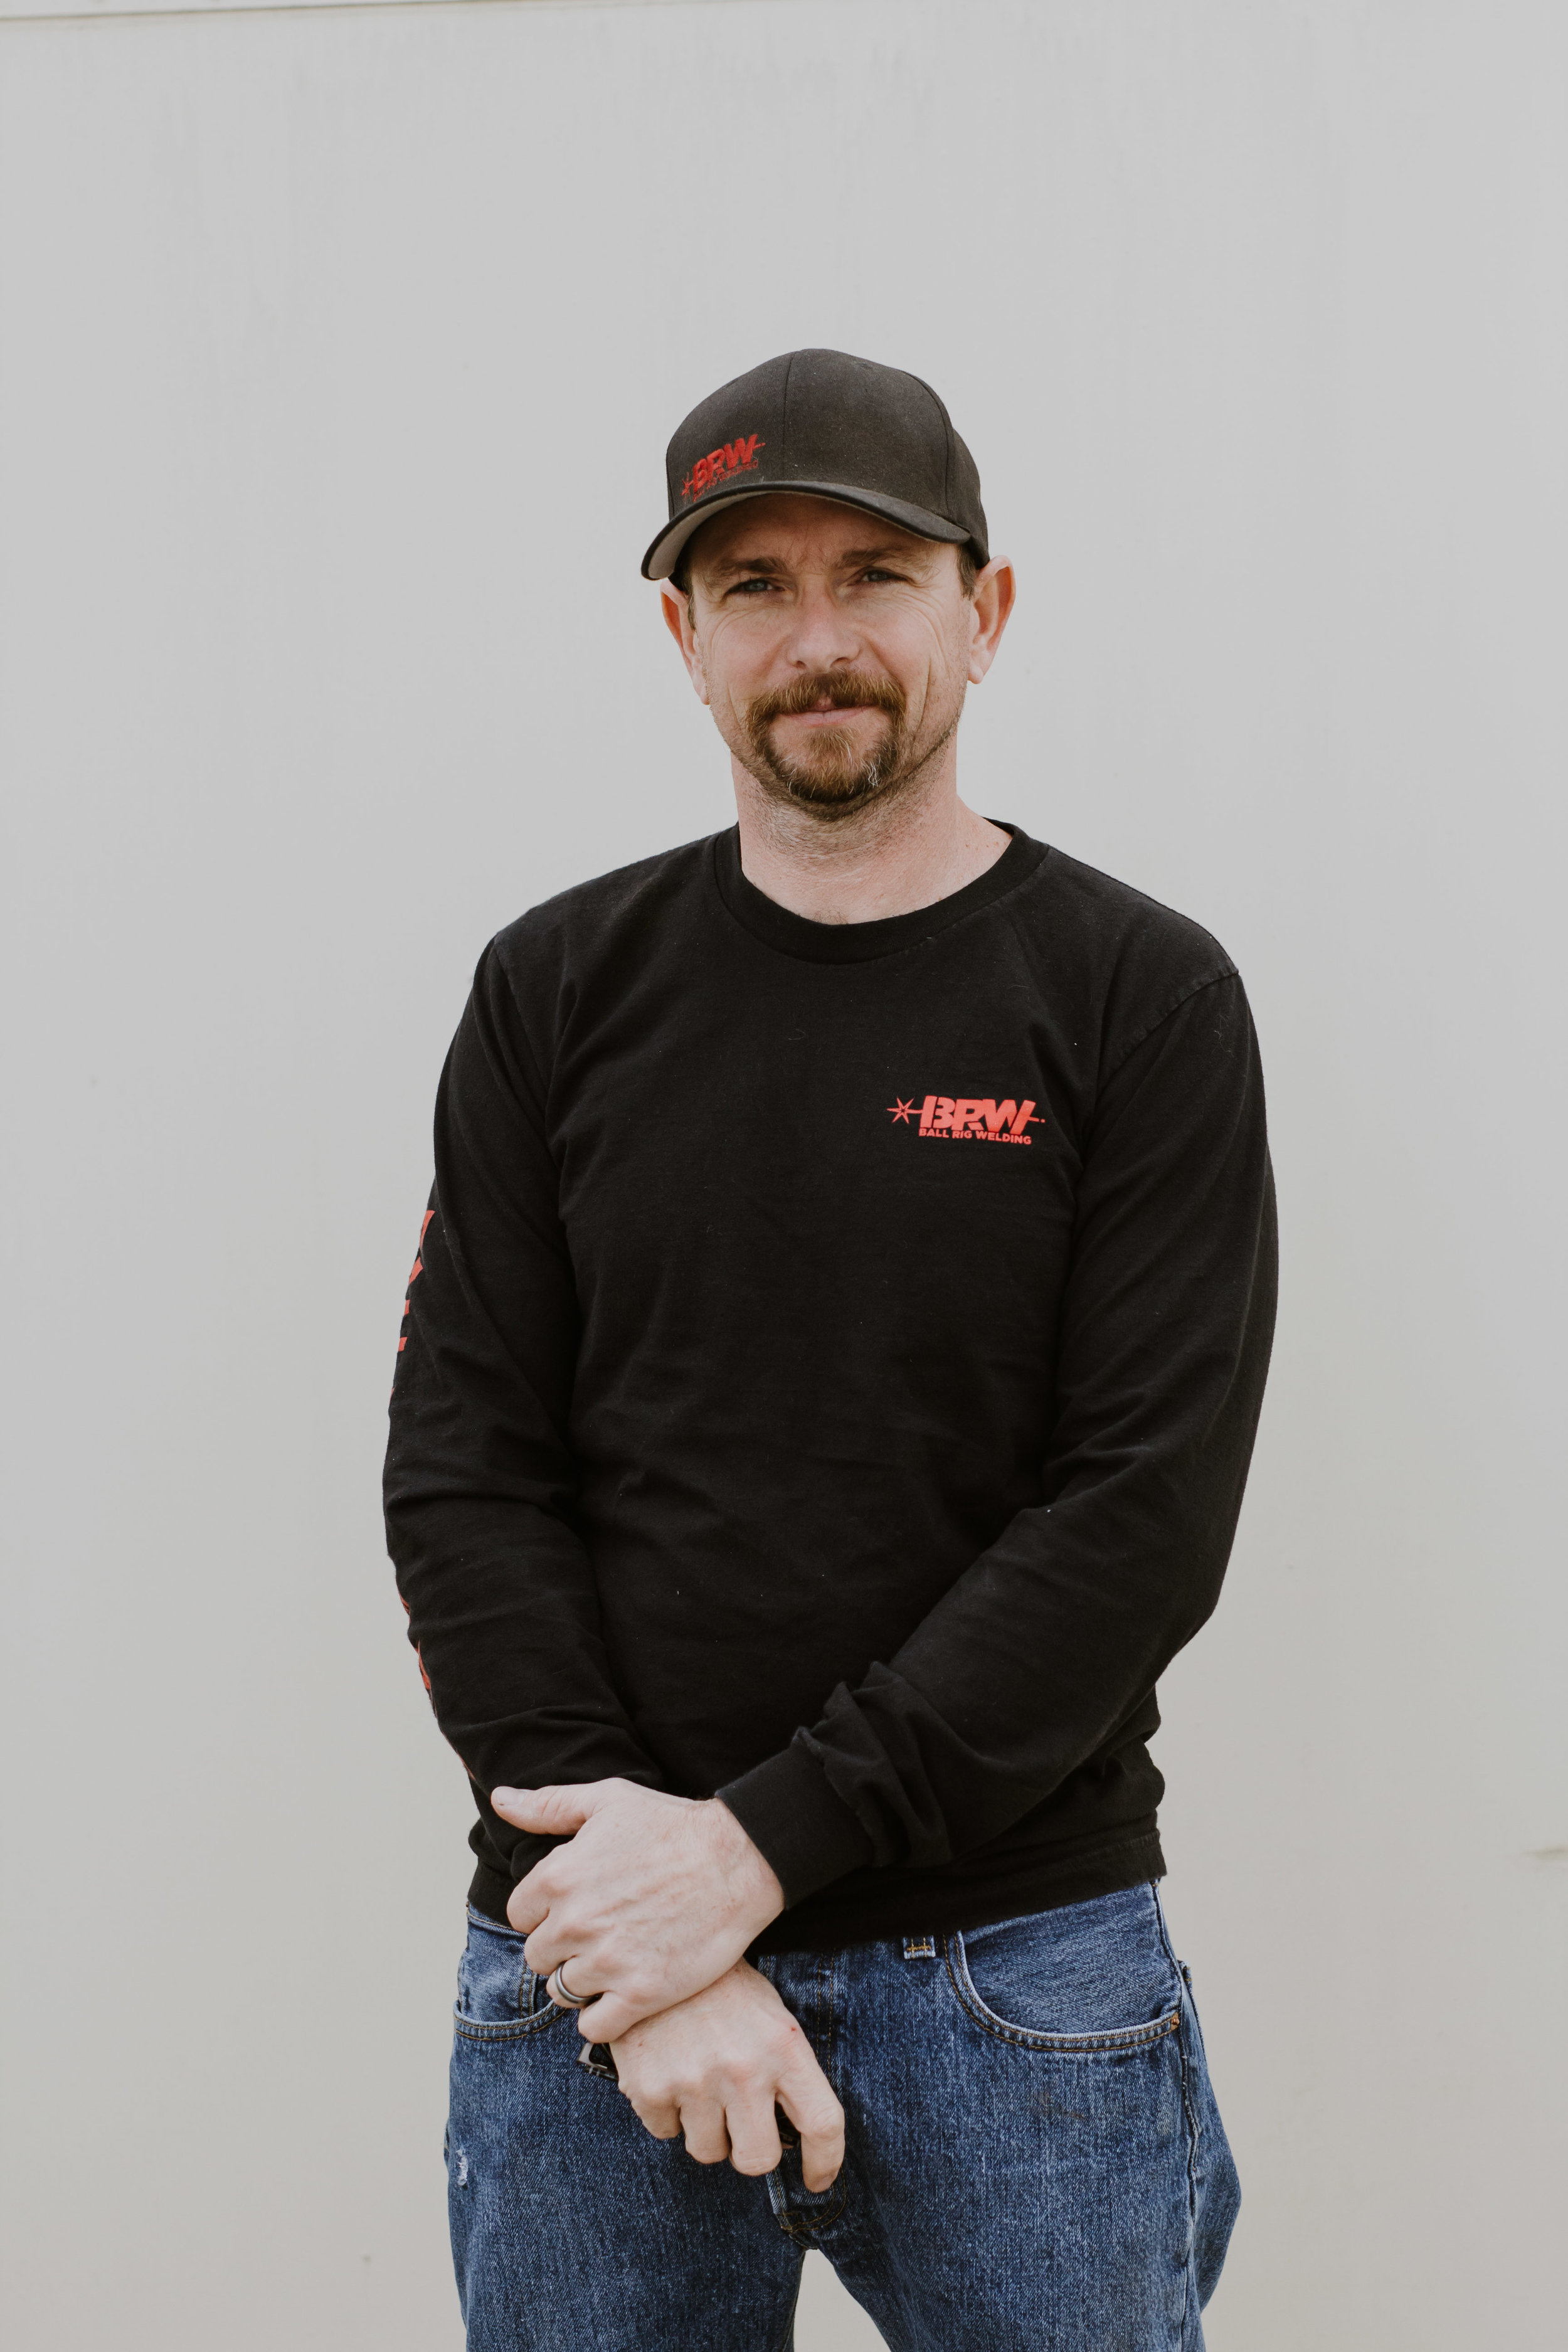 STEVEN - Steven Brooks came on board with the BRW team in 2013. Steven is a well-respected onsite supervisor. He ensures that our clients are well informed of the progress of the project while managing all the employees needs. His attention to detail makes him the perfect onsite safety coordinator. When not on site he spends his time working in the shop preparing for the next project.